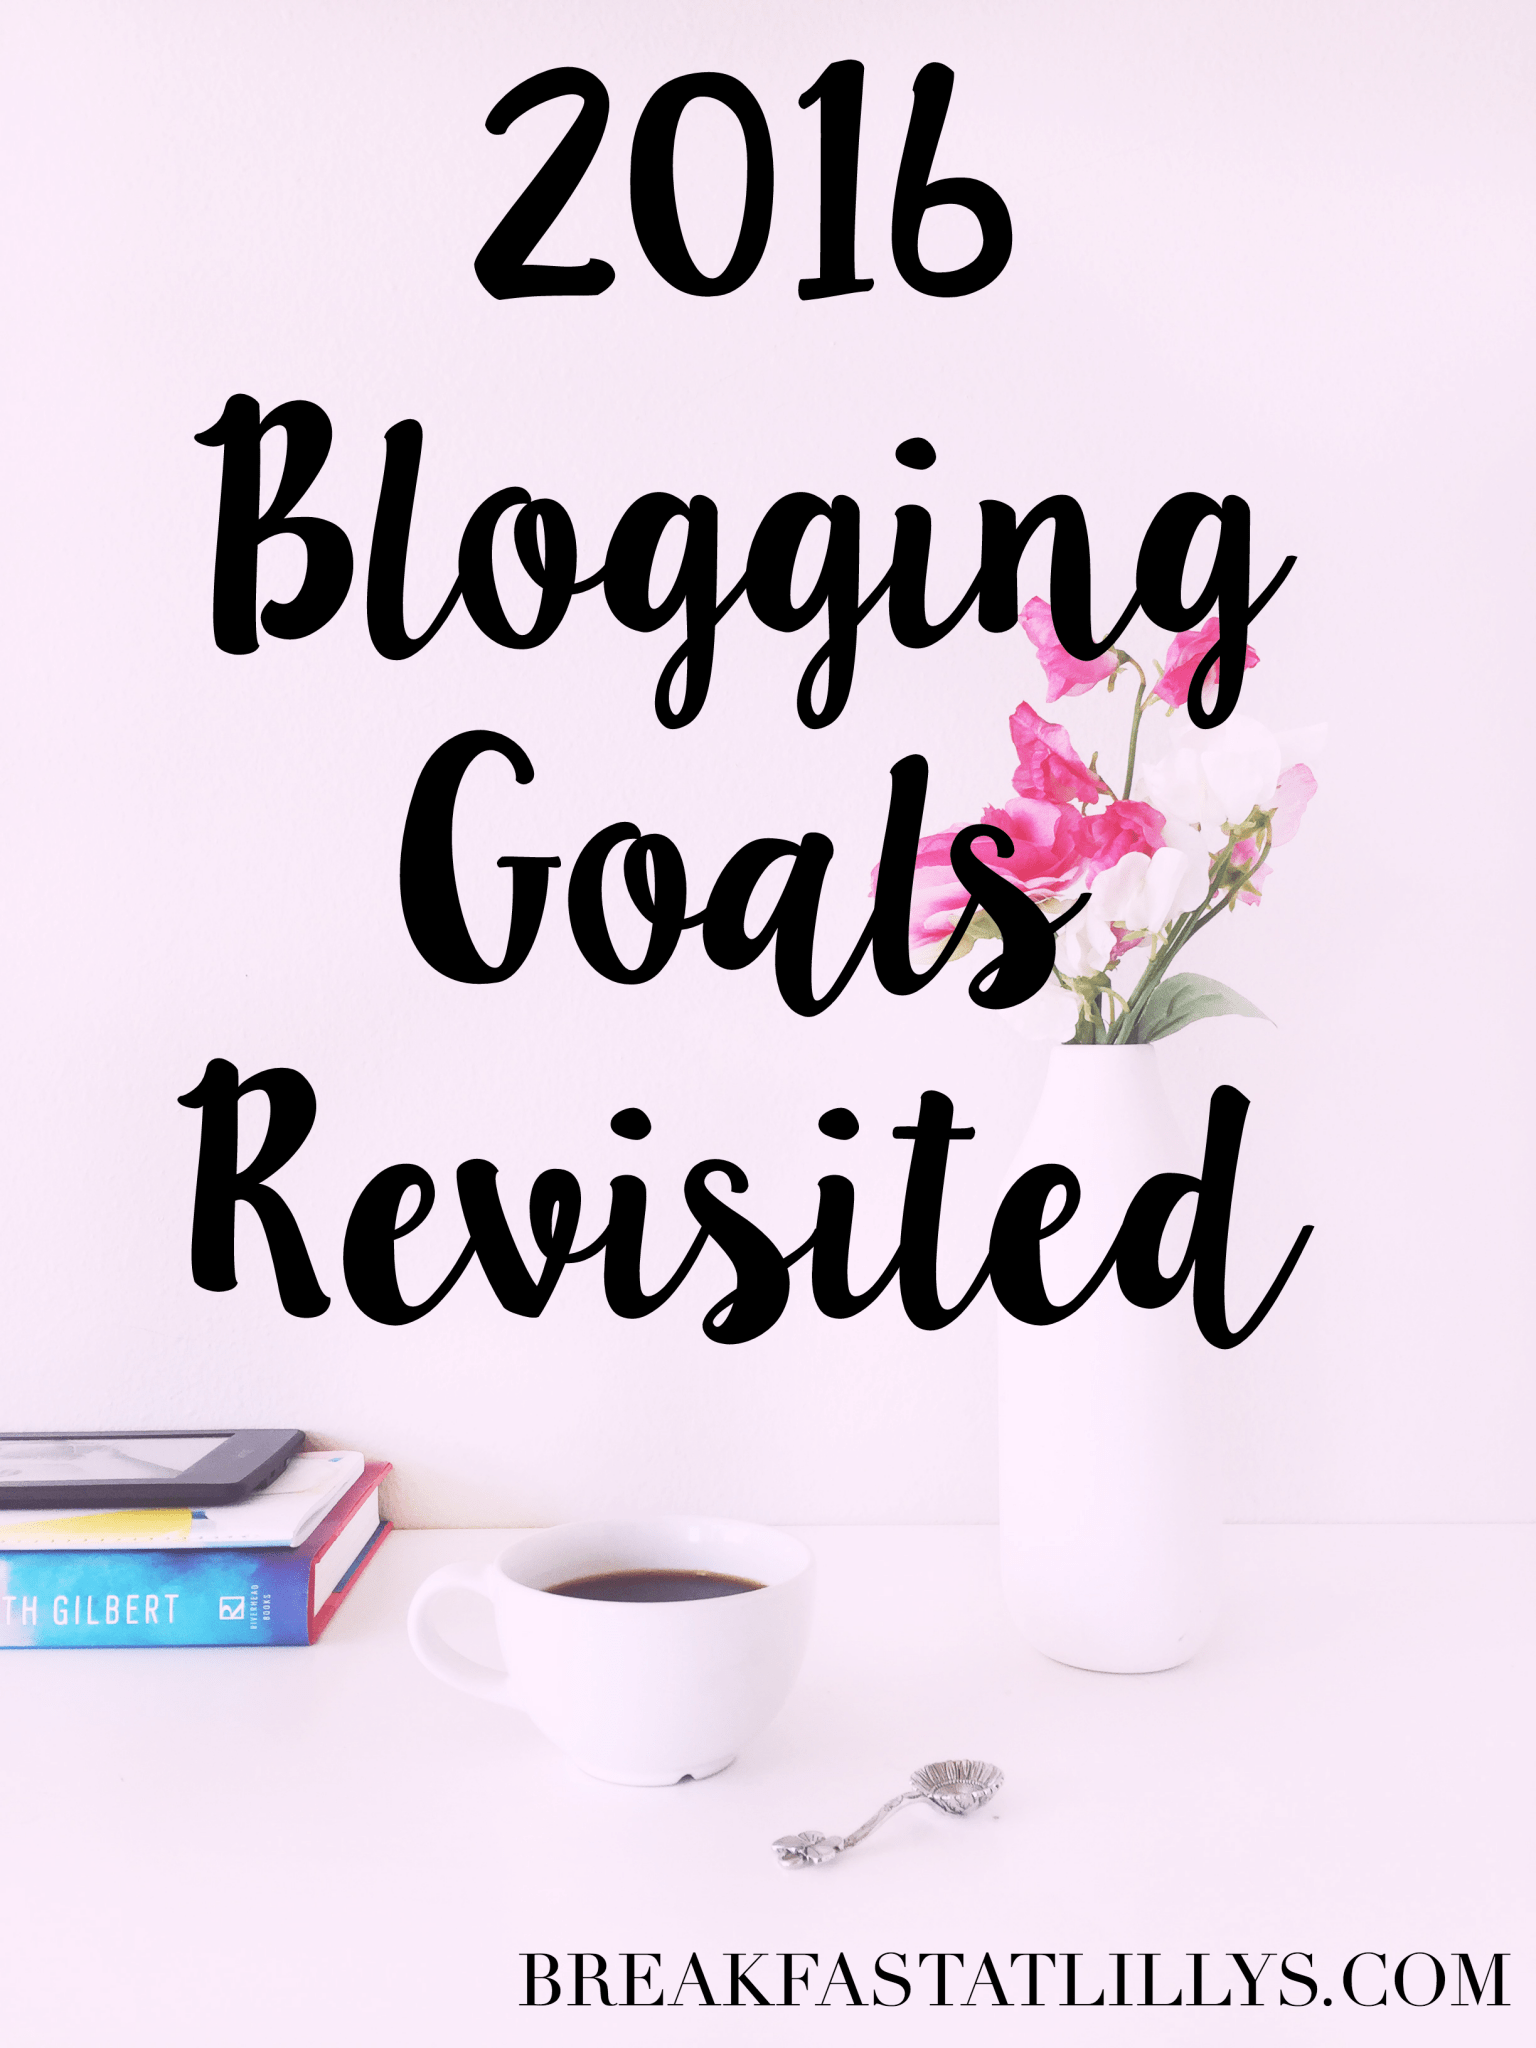 2016 Blogging Goals Revisited